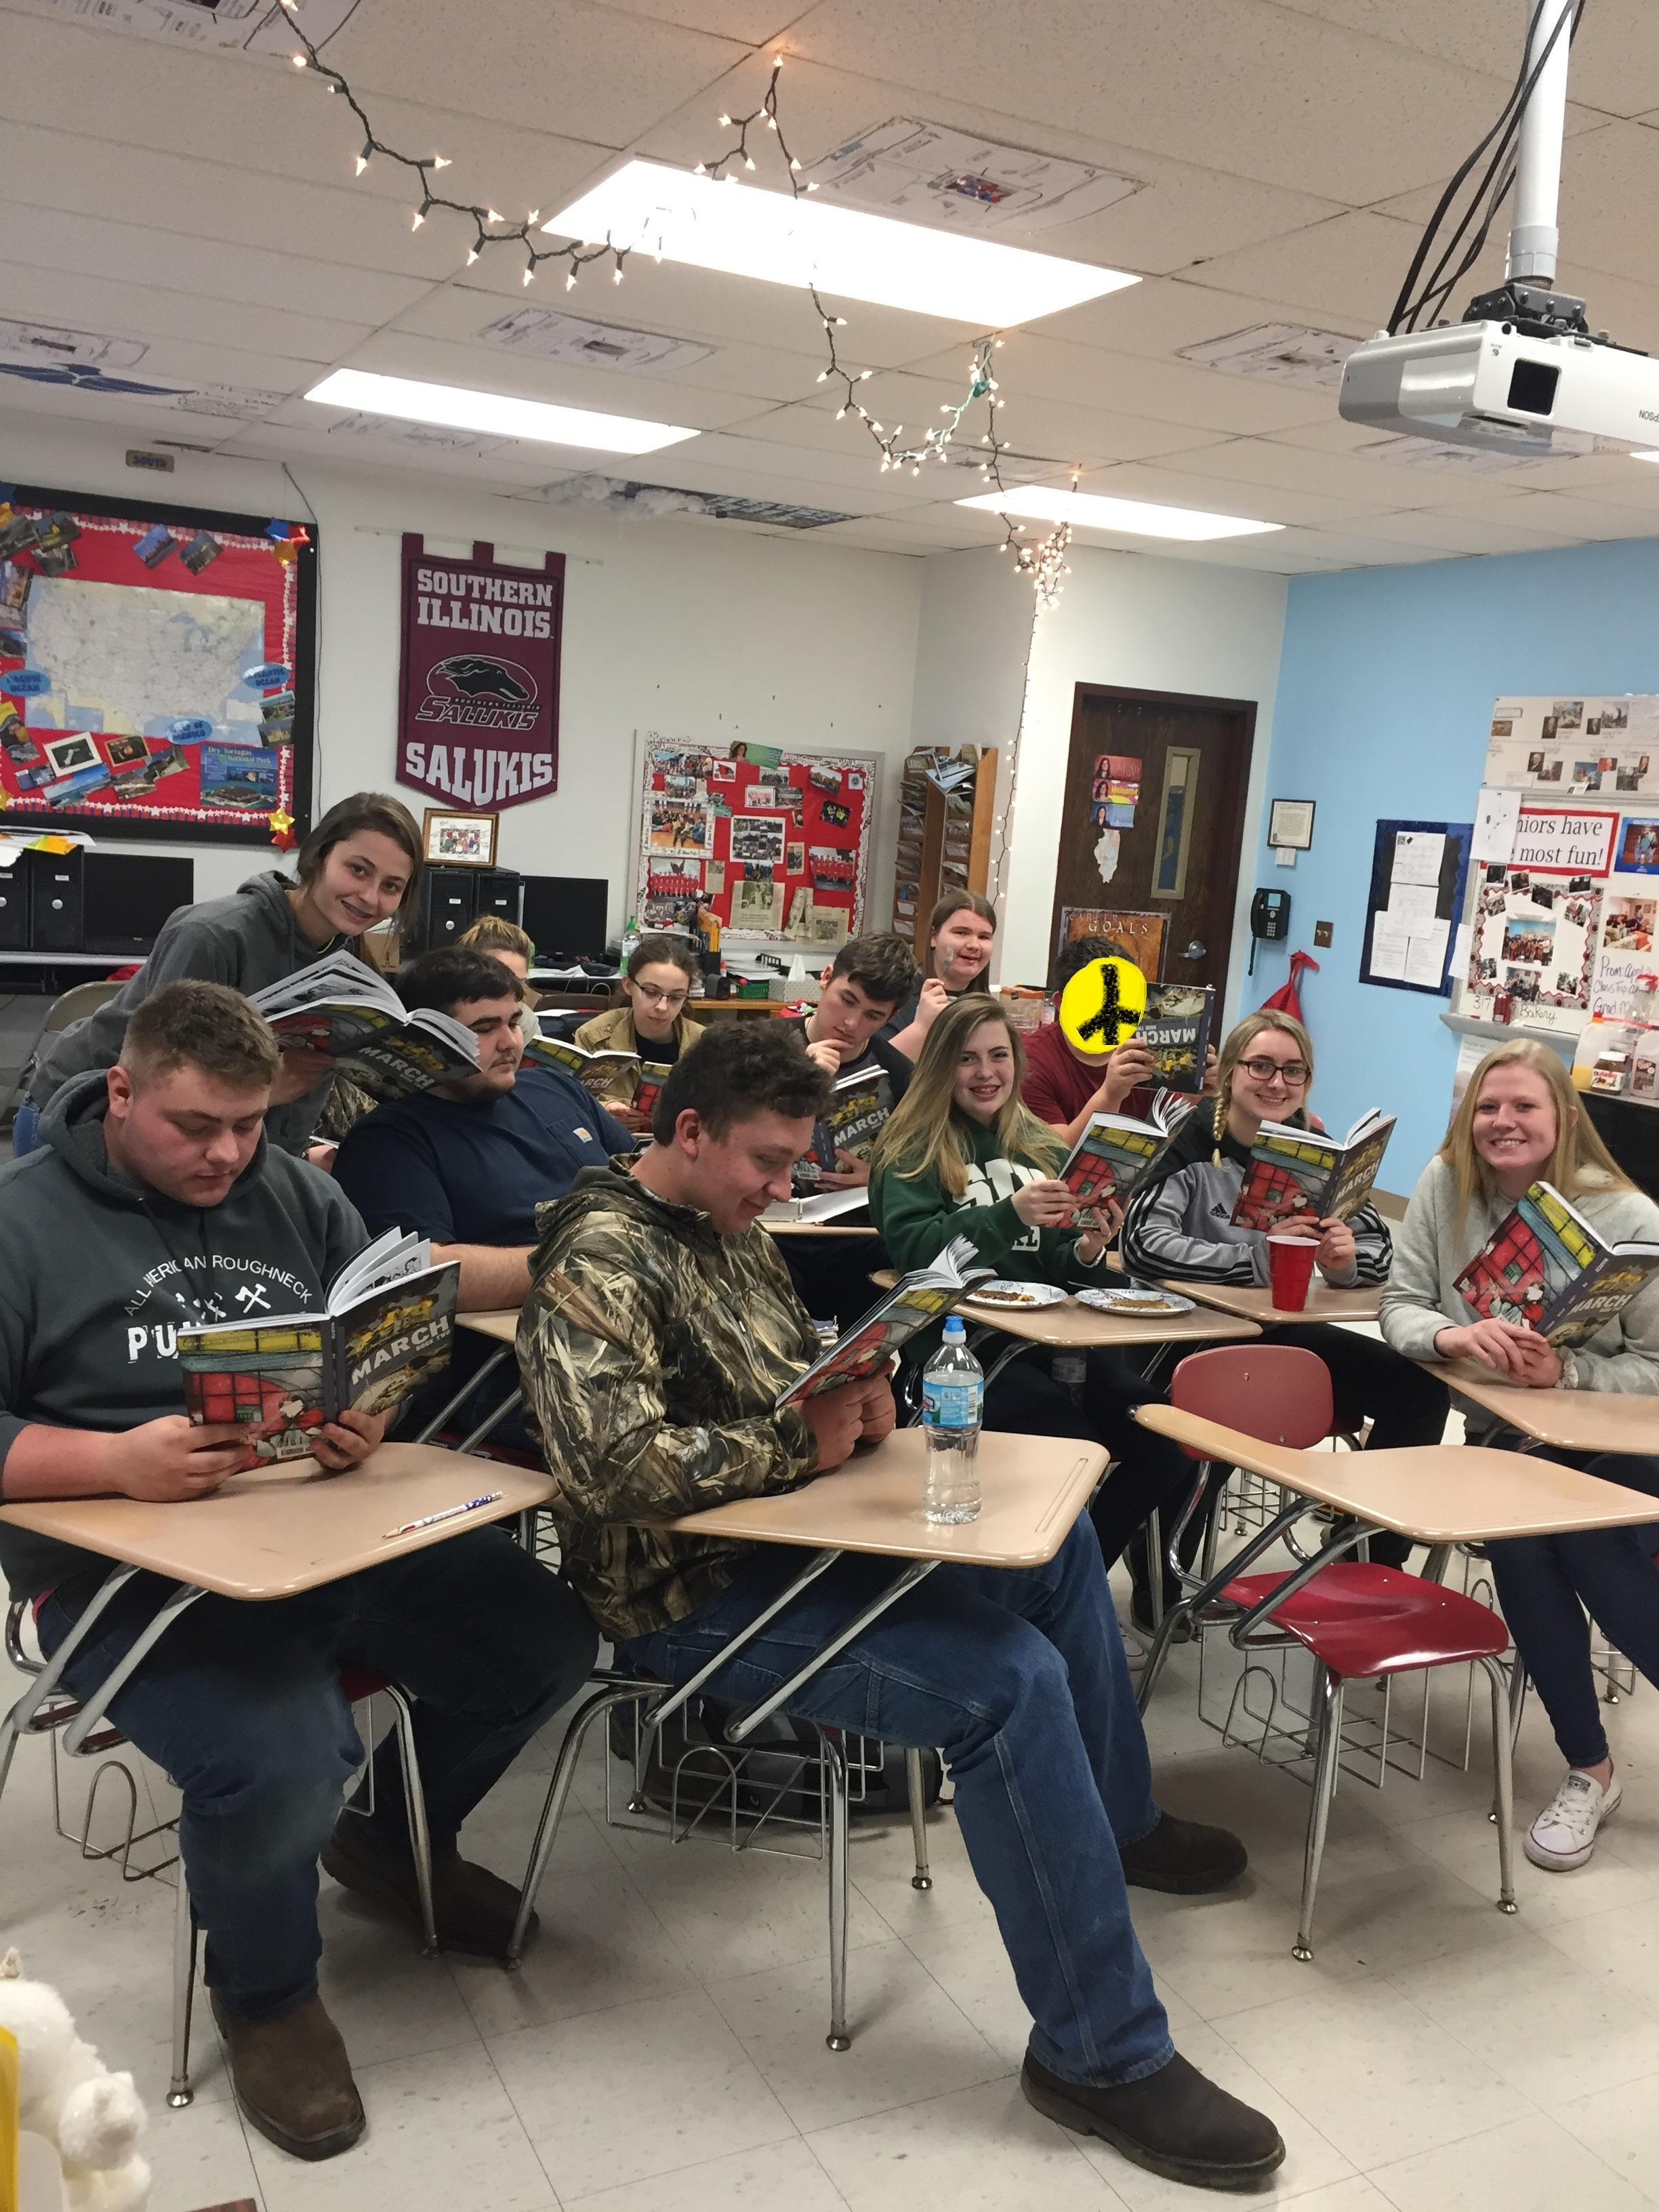 The Juniors read March II and celebrate John Lewis's birthday!